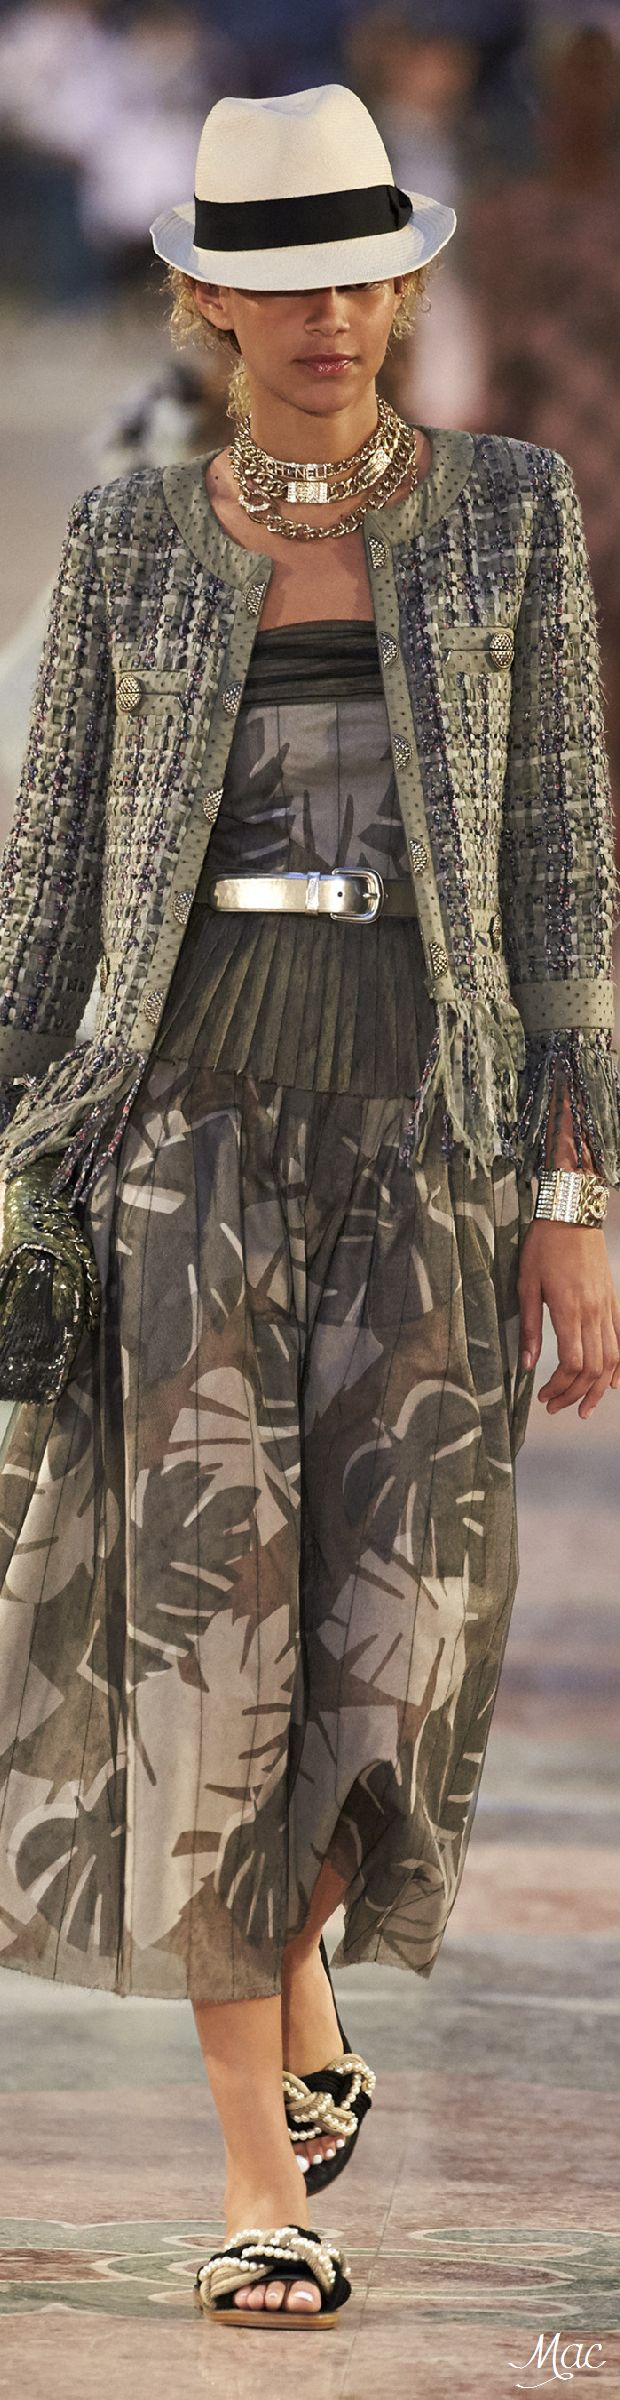 Resort 2017 Chanel This is an absolute must on the inspiration board for fall.  Major WOW factor here!